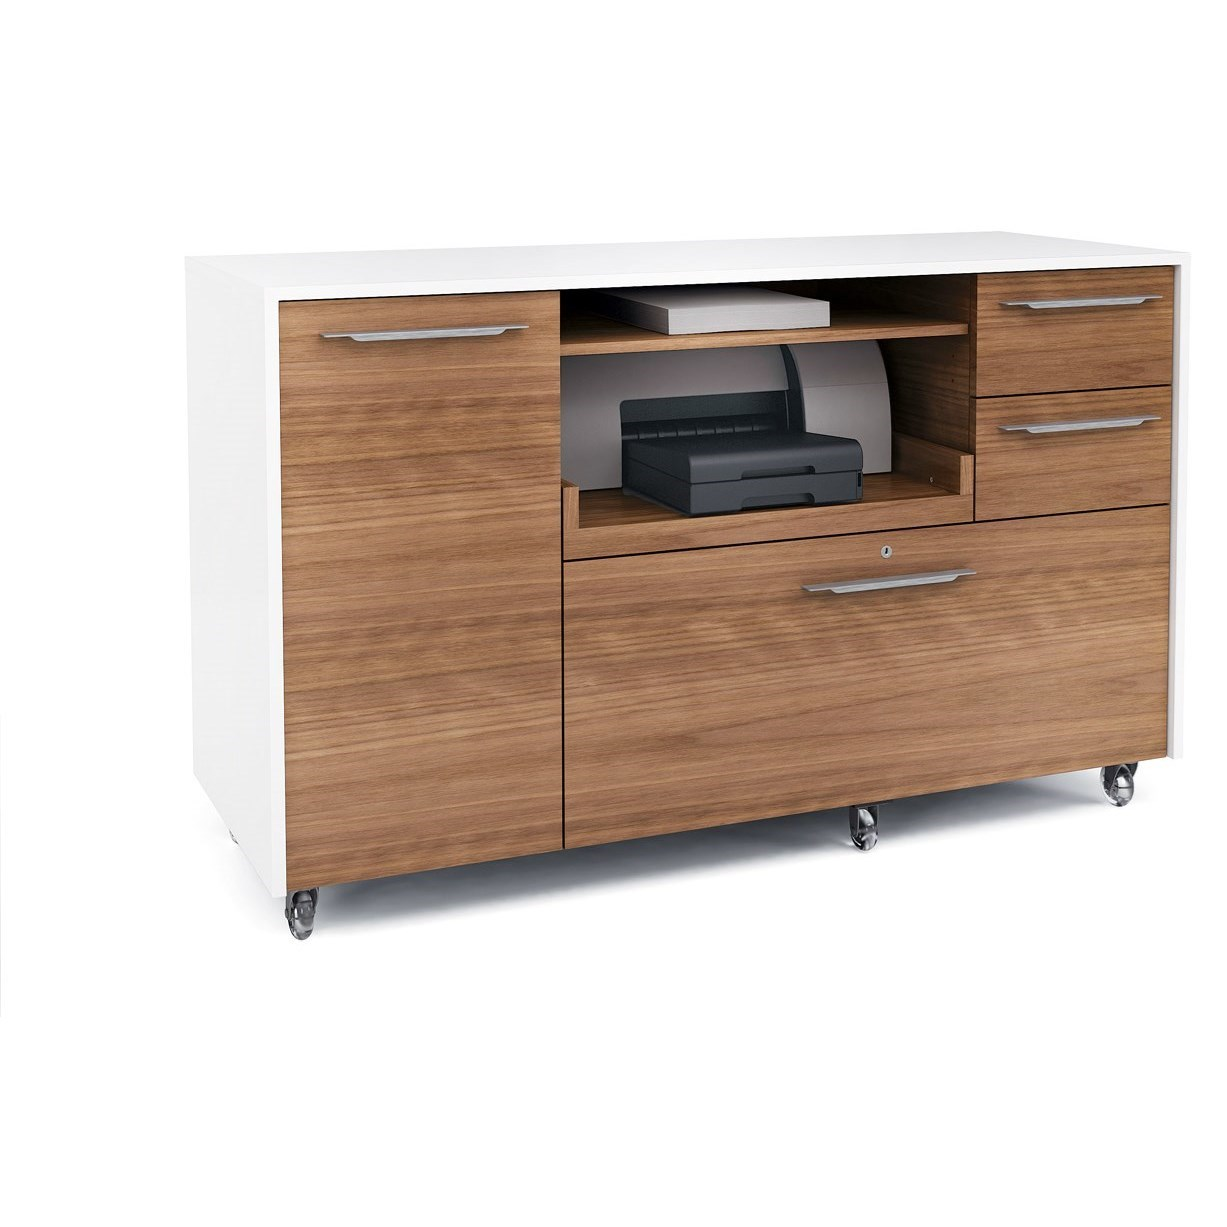 Format Mobile Credenza by BDI at Upper Room Home Furnishings